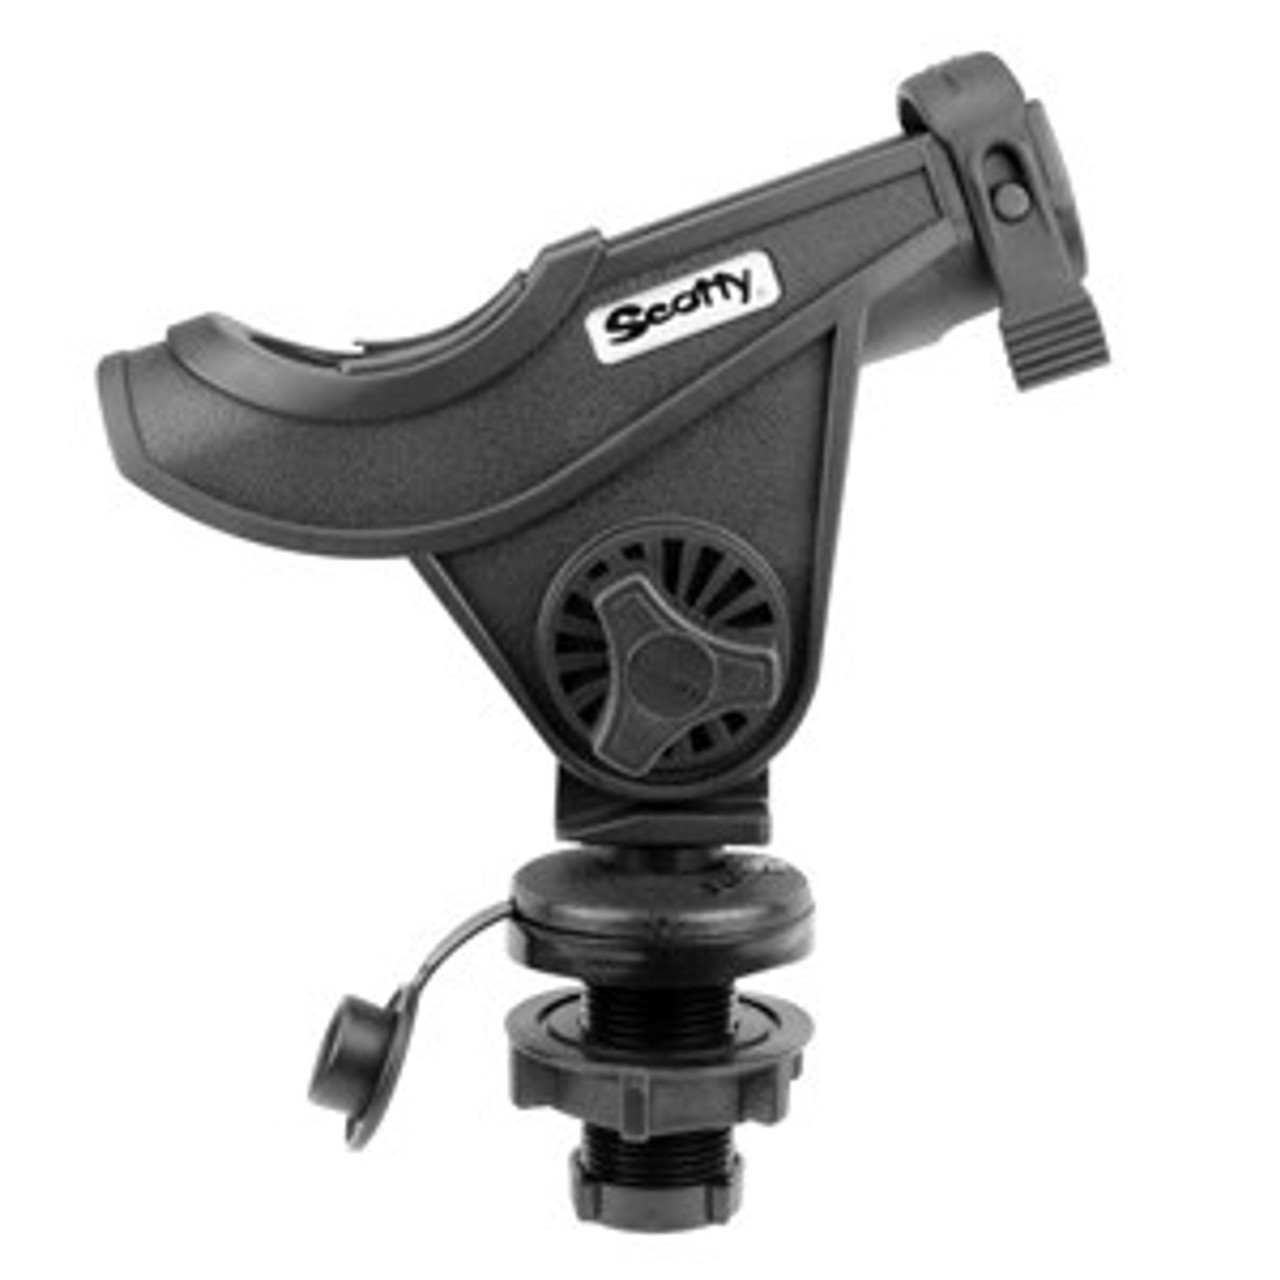 Scotty Bait Caster with Compact Threaded Deck Mount